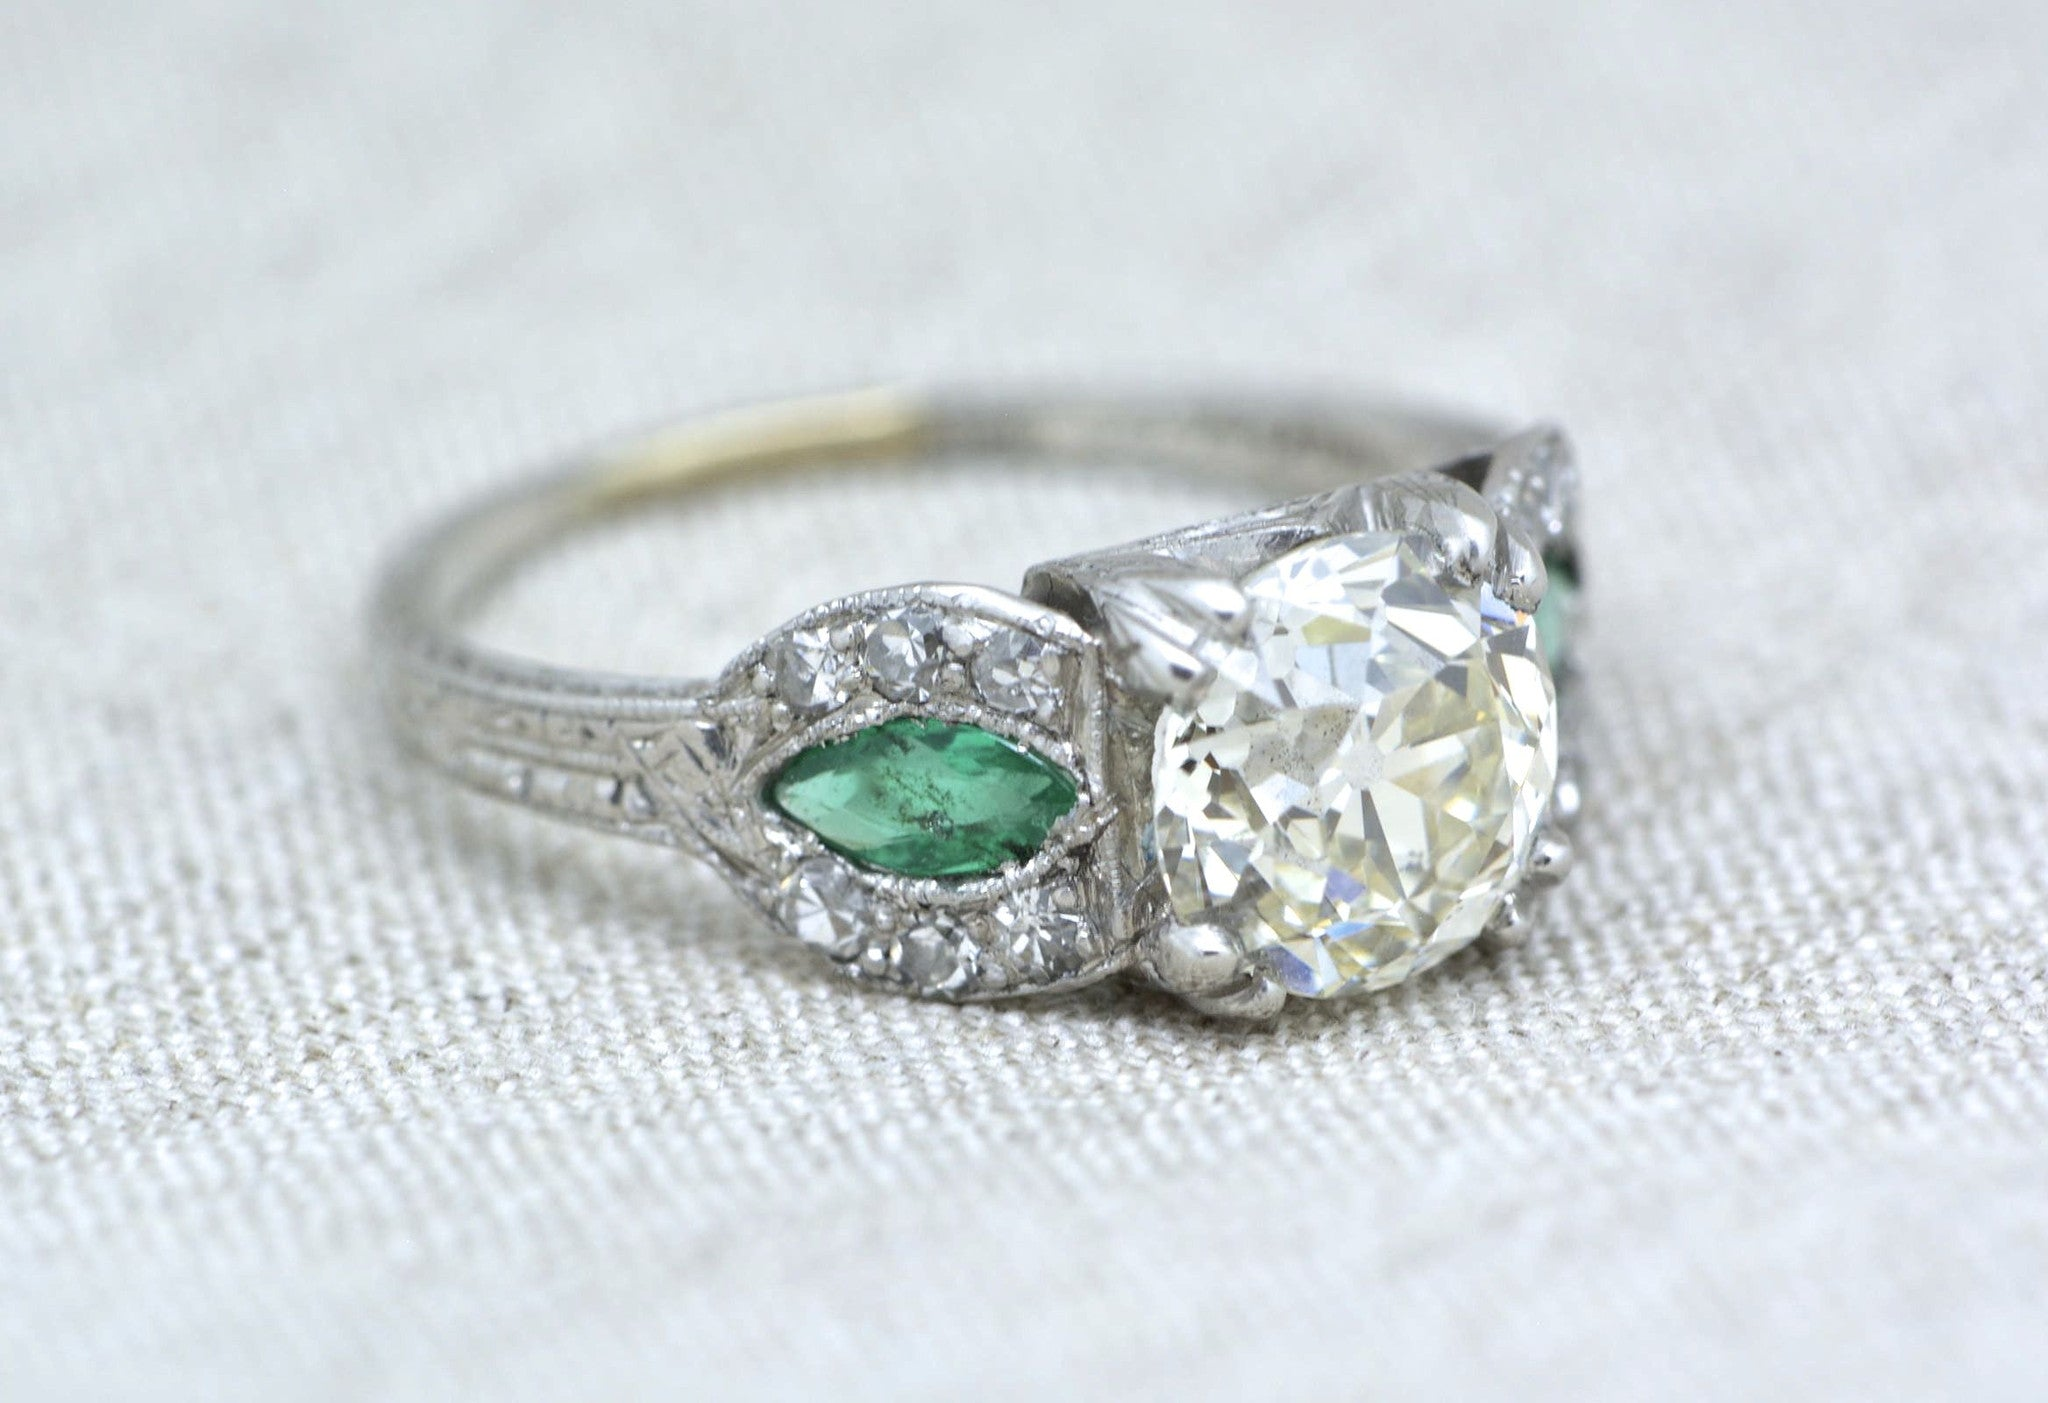 ctw diamond rings emerald european products platinum edwardian engraving cut art accents ring engagement with accent single and carat natural old antique diamonds deco